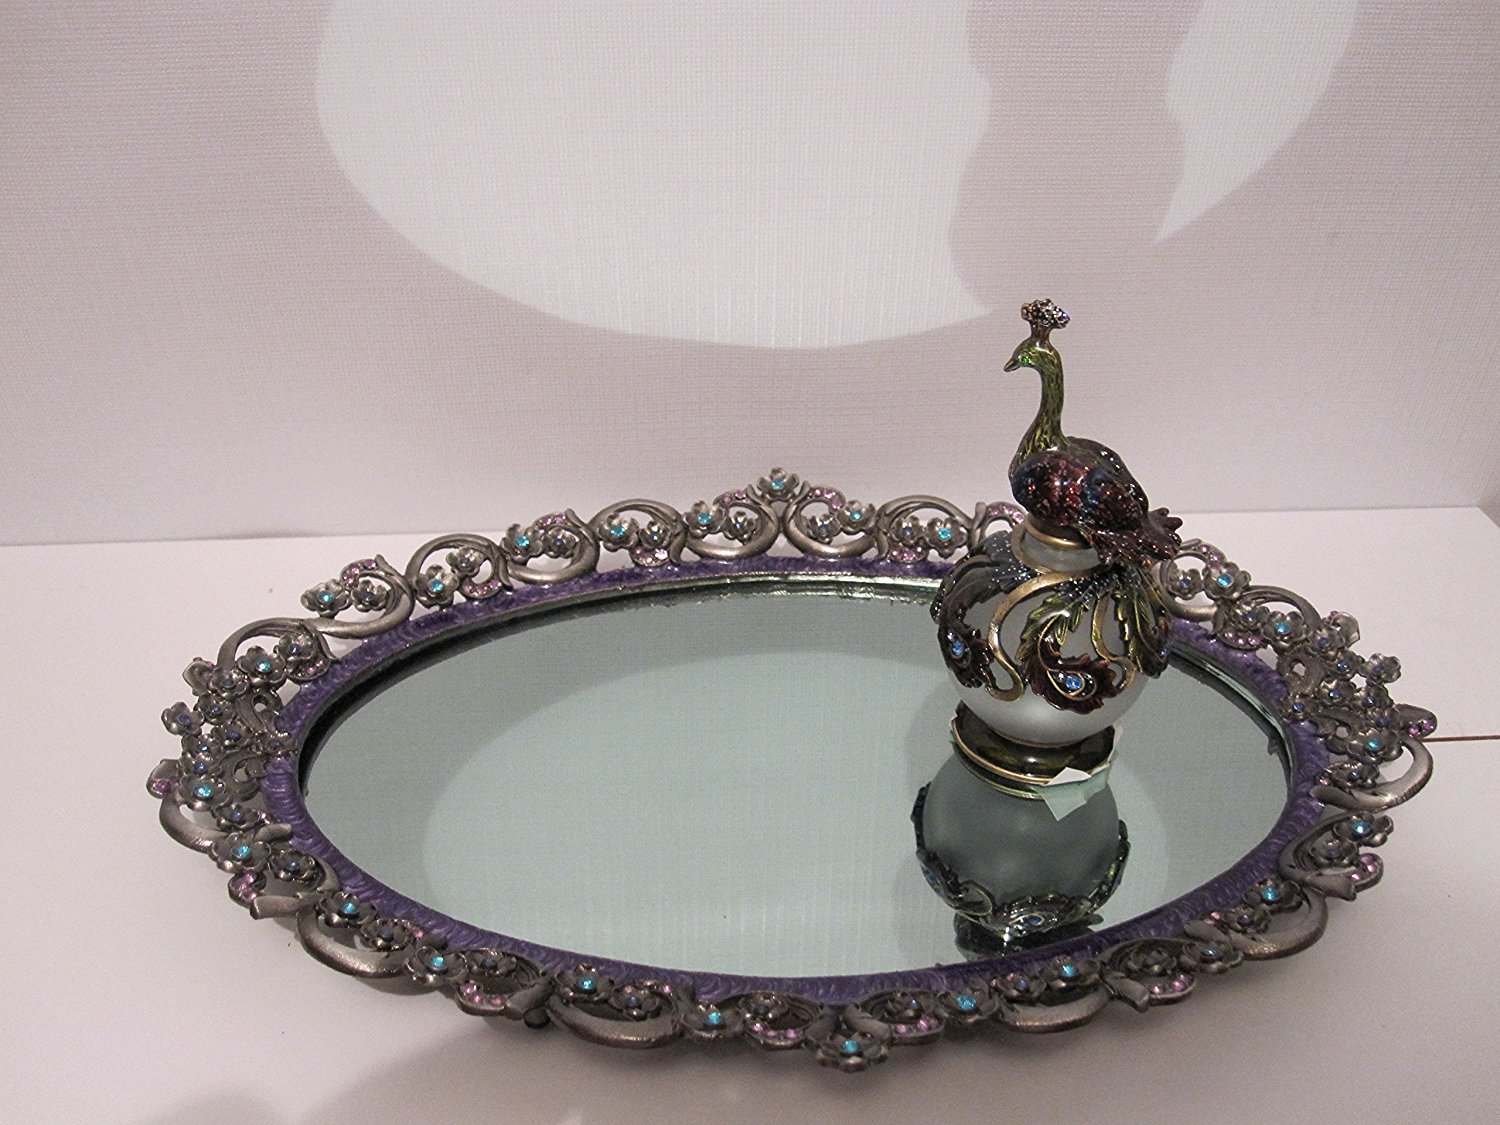 mirrored mirror com inovodecor perfume decorations inovation all mirrors house tray vanity for